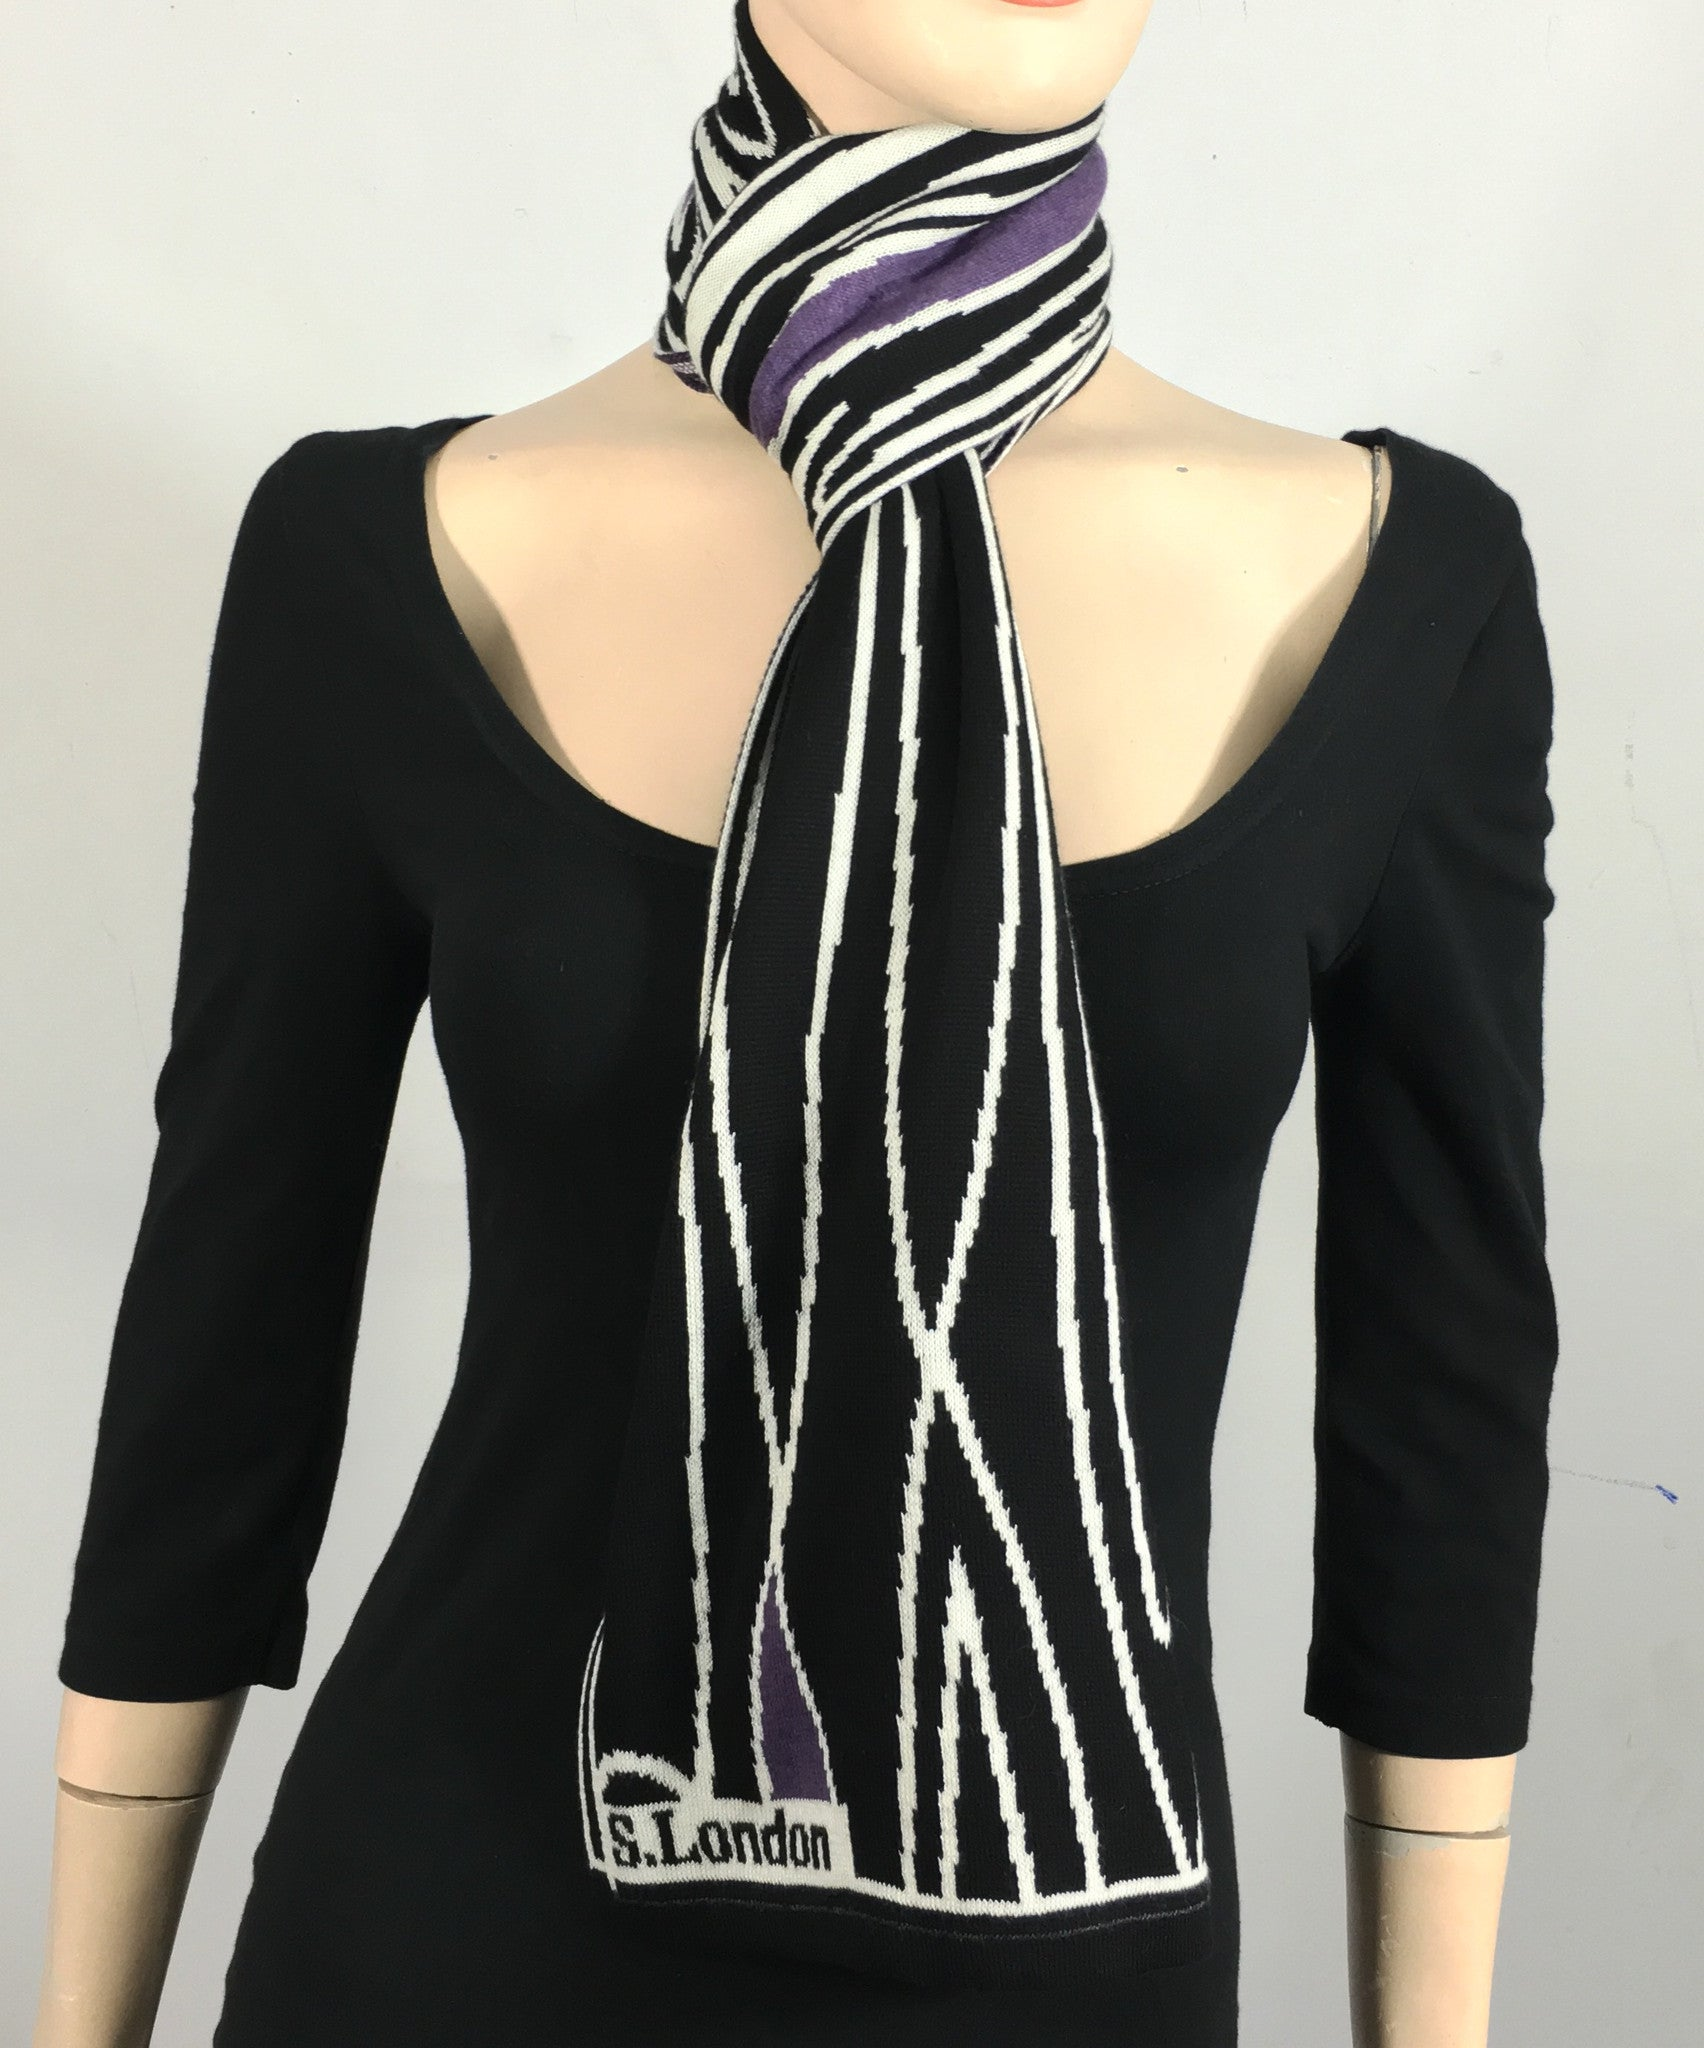 Black, white and purple scarf